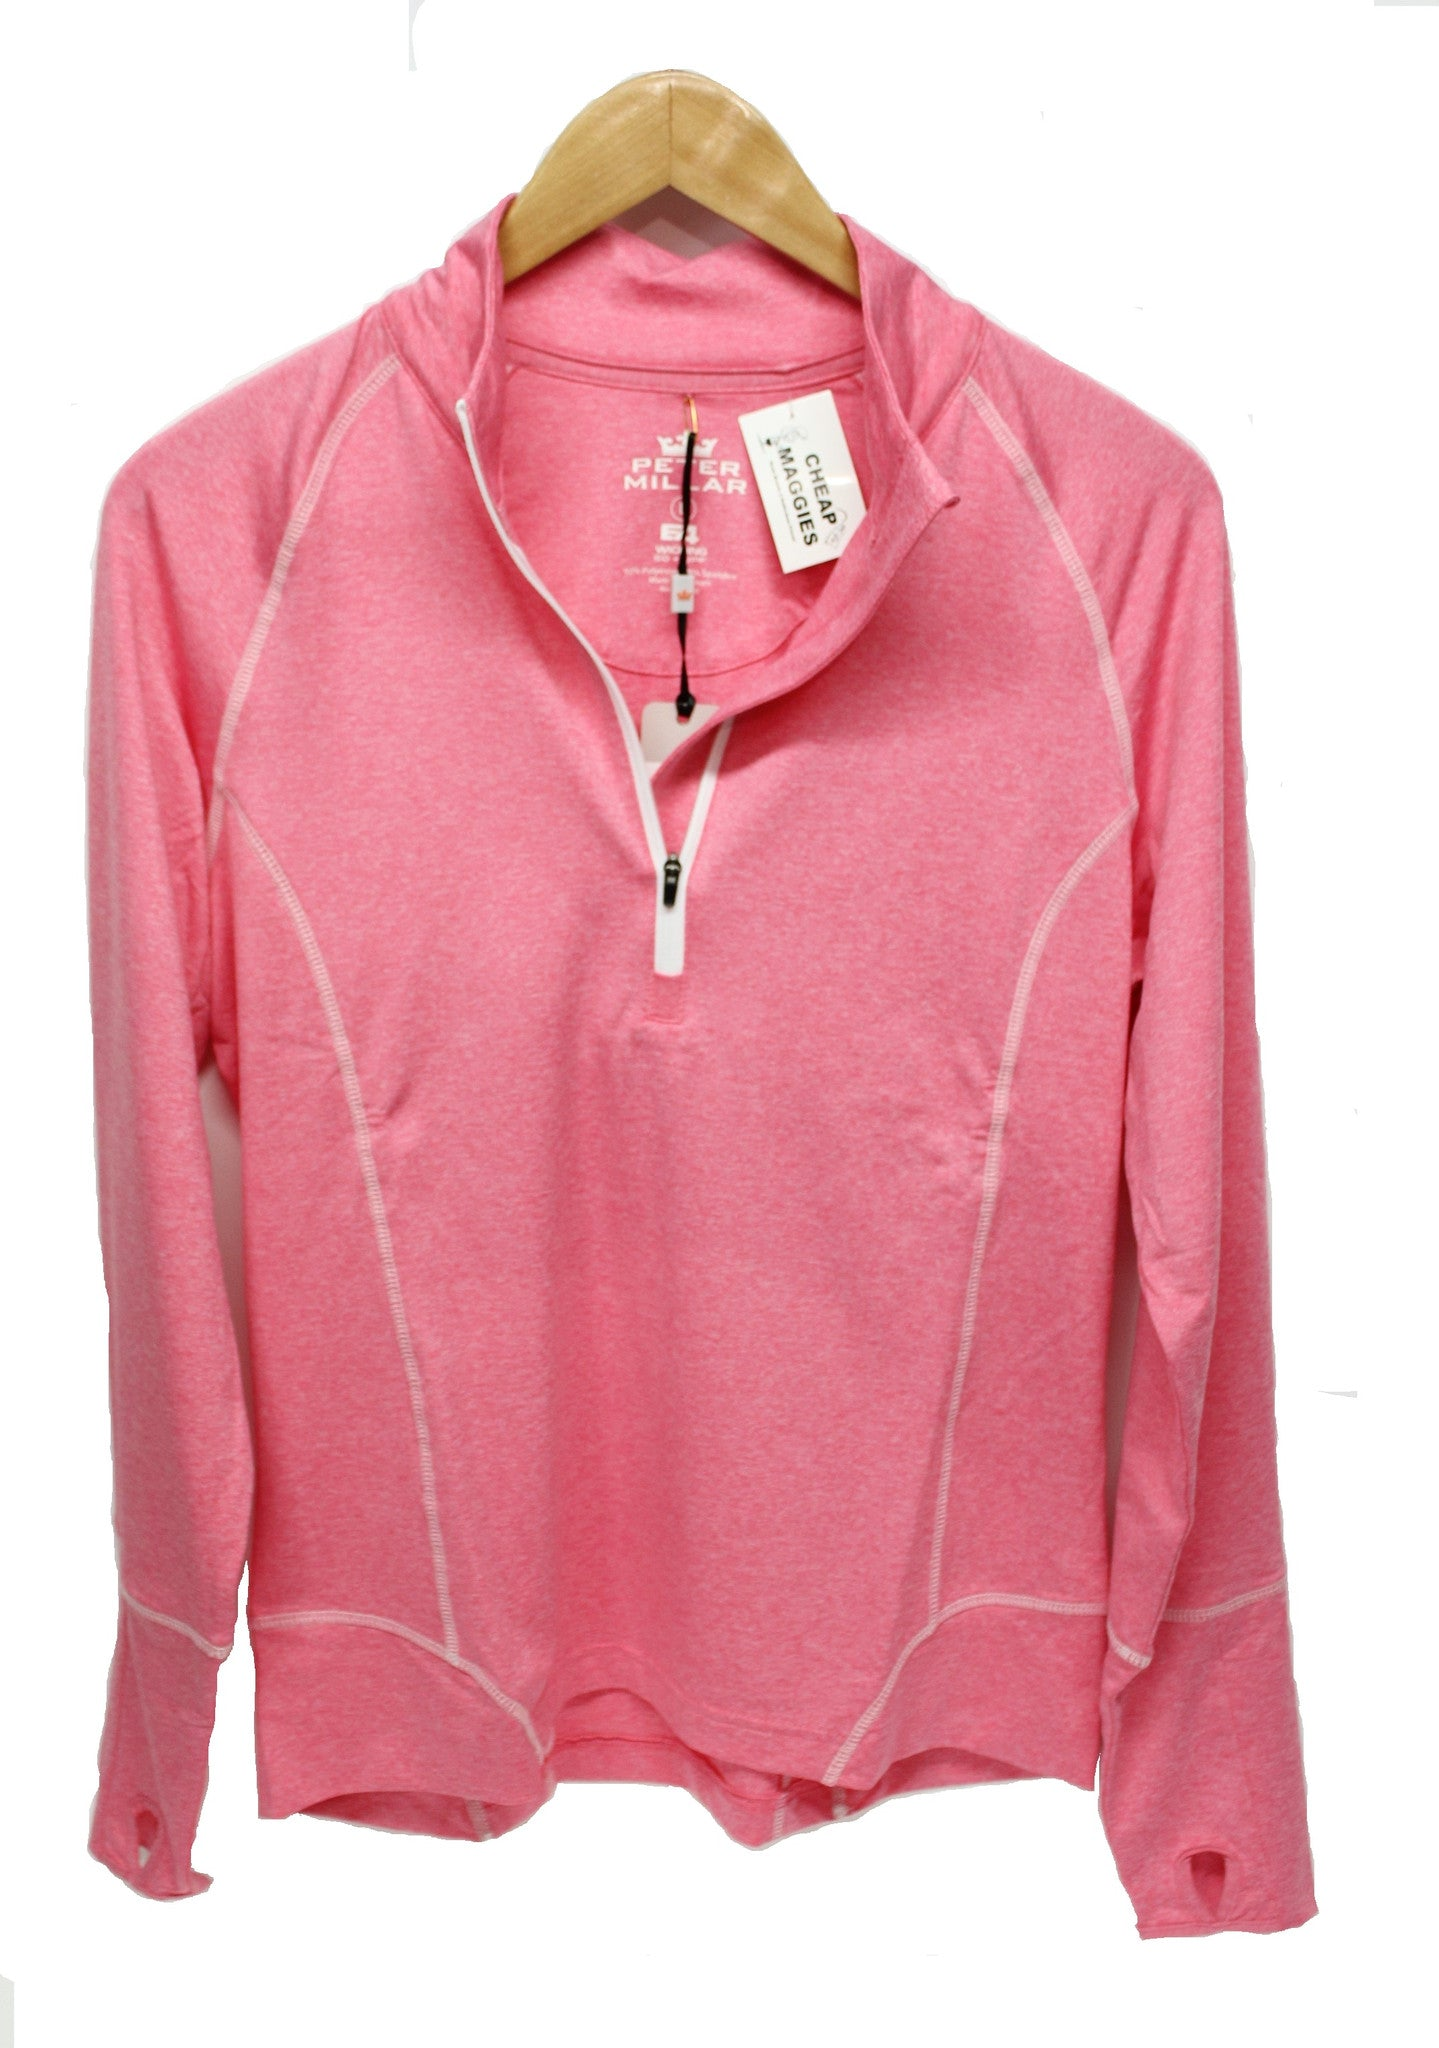 Peter Millar Women's Quarter Zip Stretch Performance Top - Pink